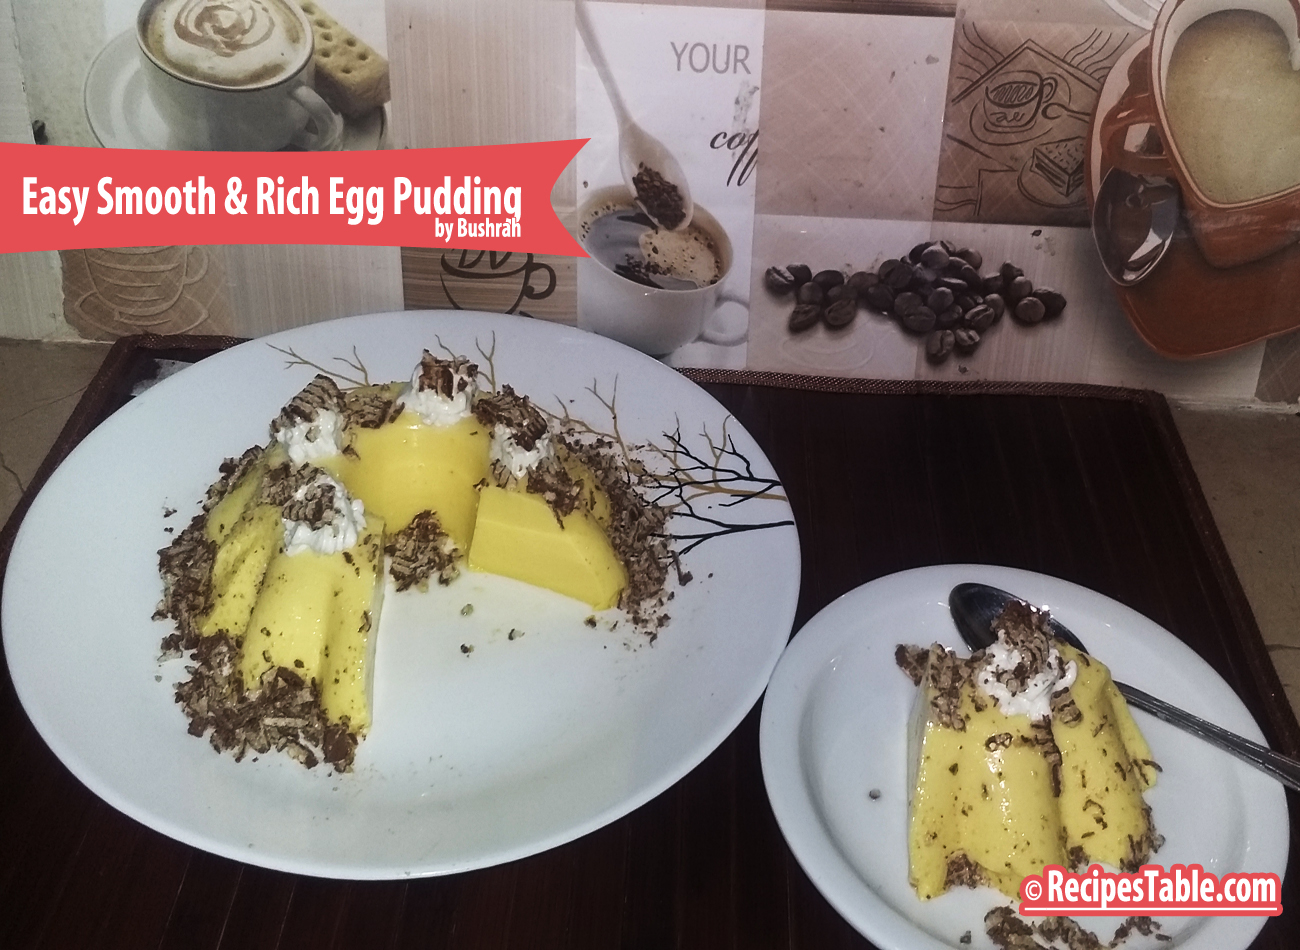 Easy Smooth & Rich Egg Pudding